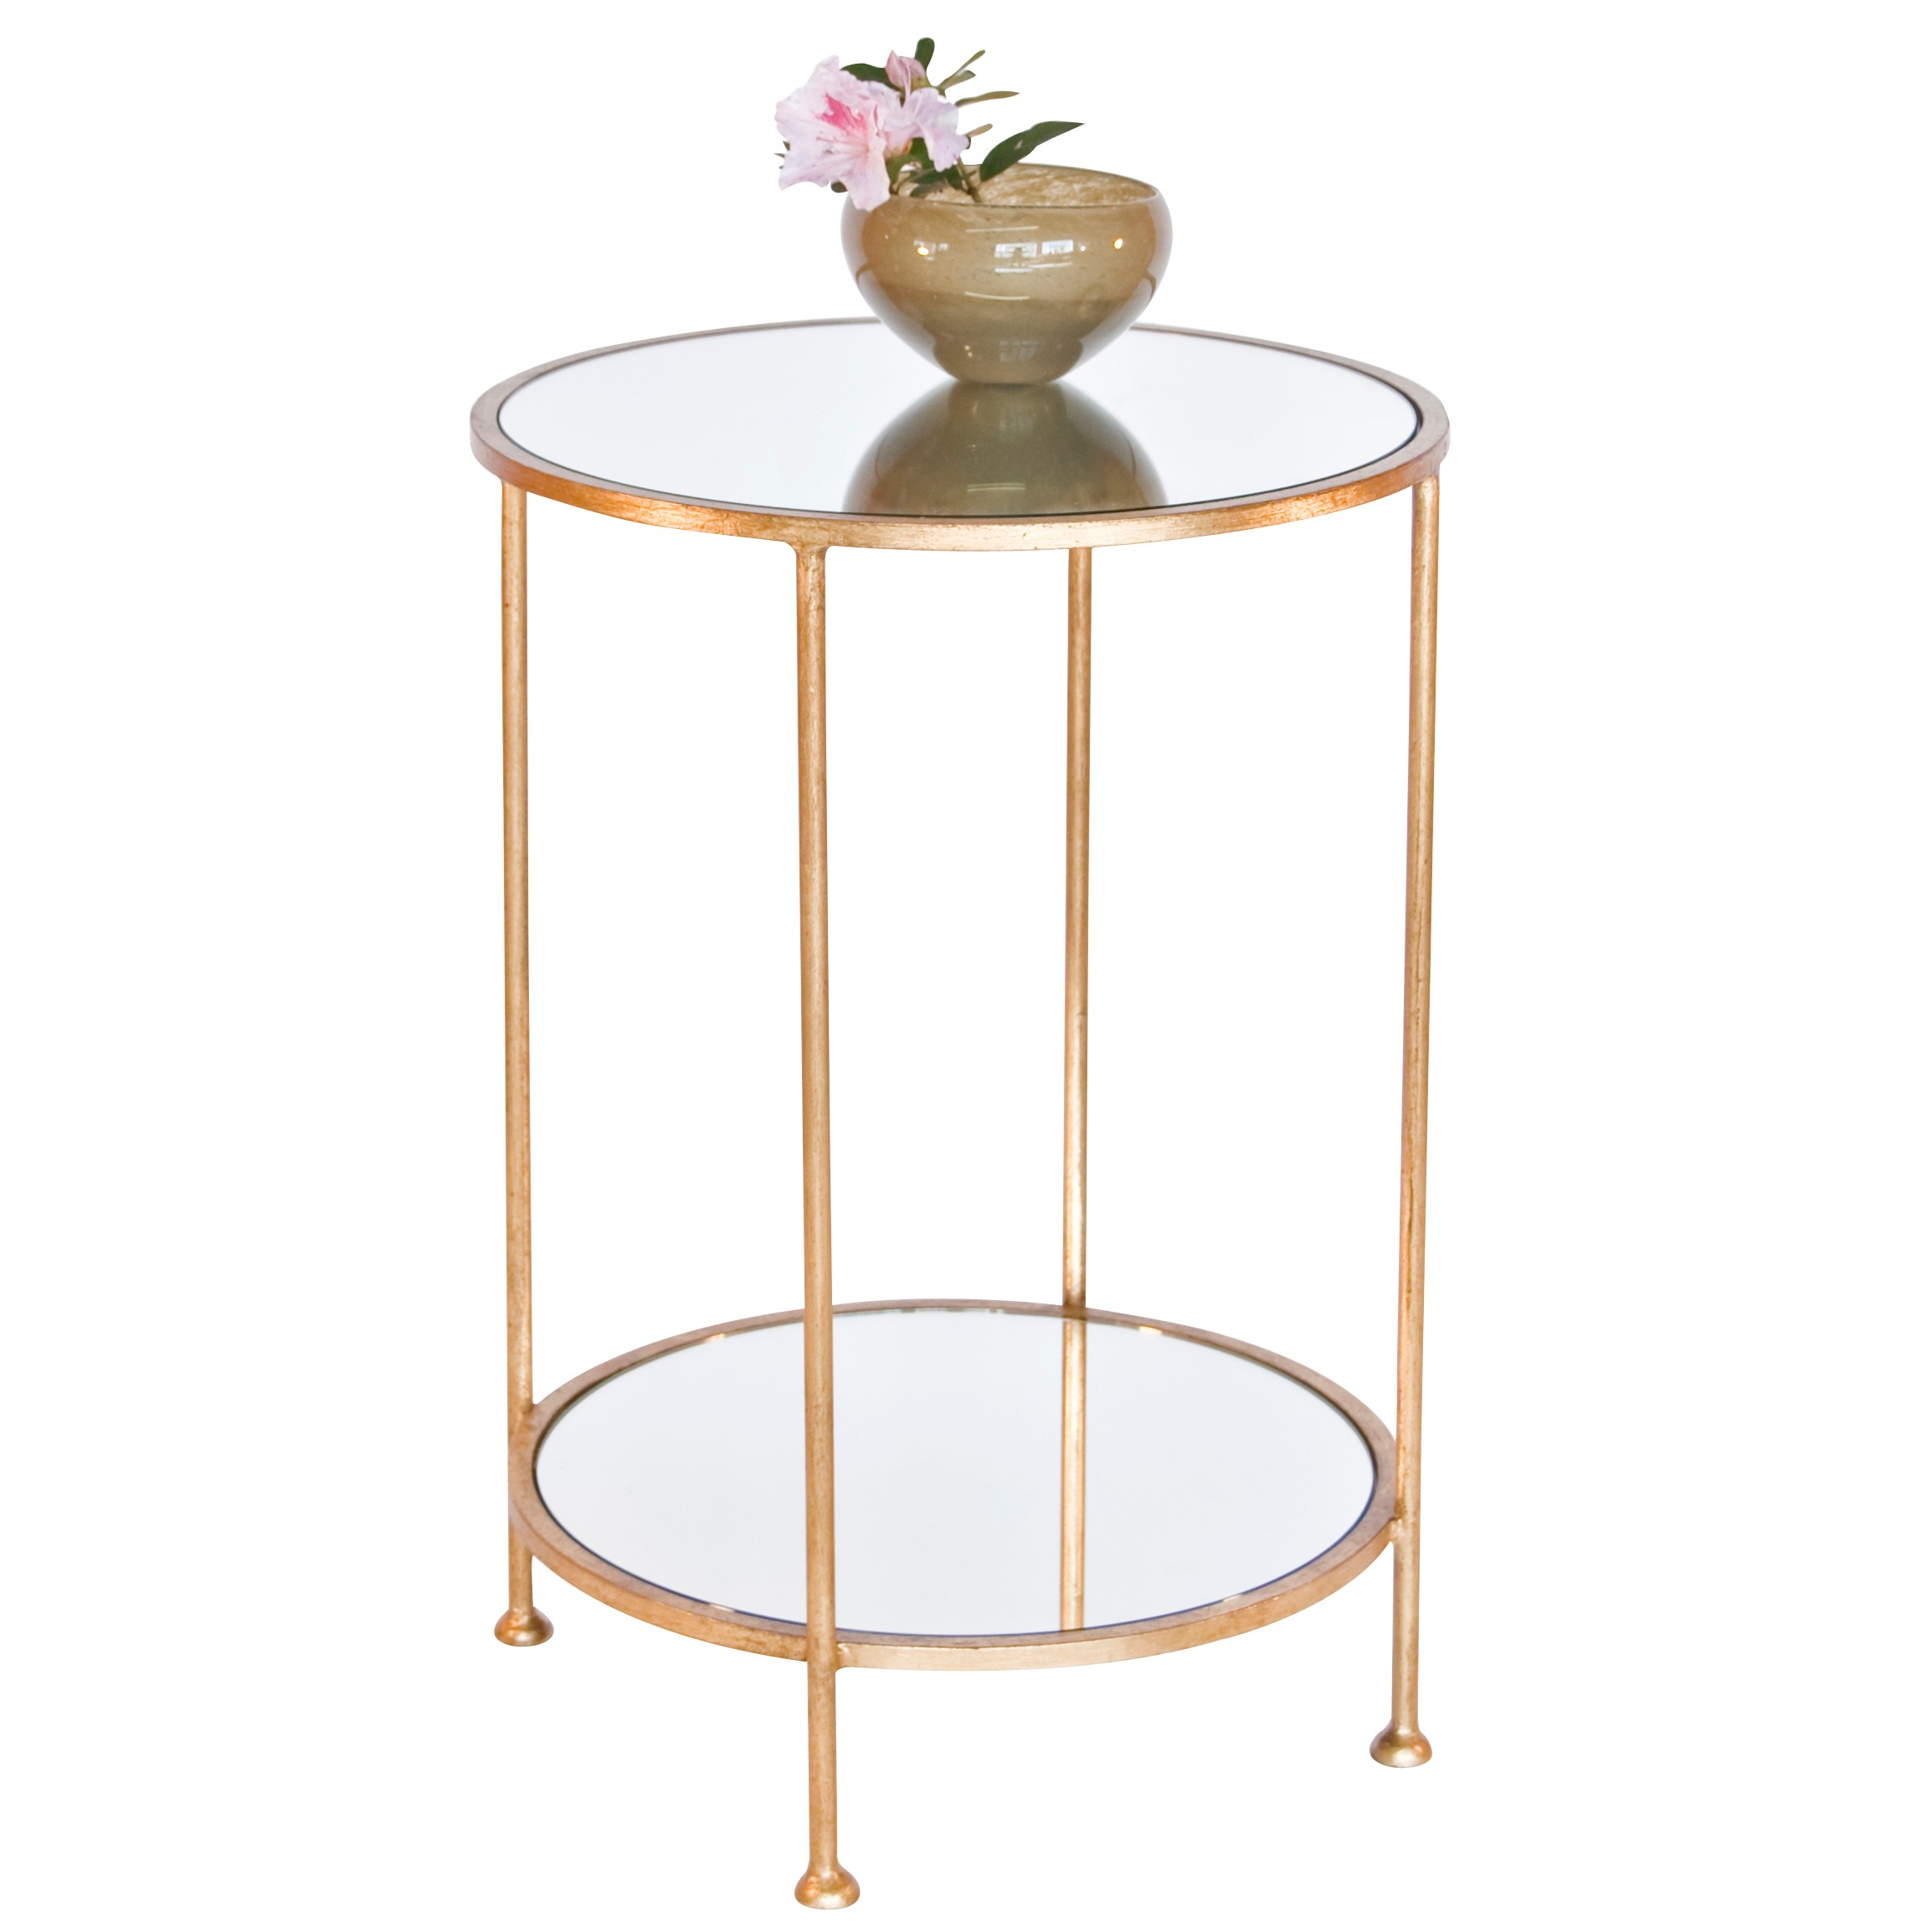 furniture antique mirror top ikea side table worlds away exciting for unique living room storage design chandelier modern coffee gold accent with glass reclaimed wood end jcpenney